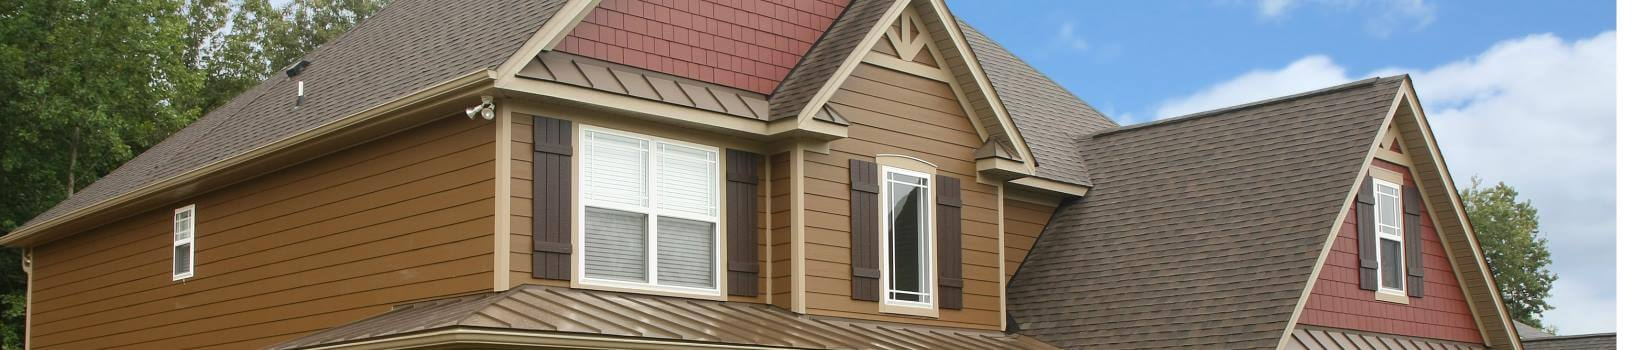 Replacement windows chicago siding chicago roofing and James hardie cost